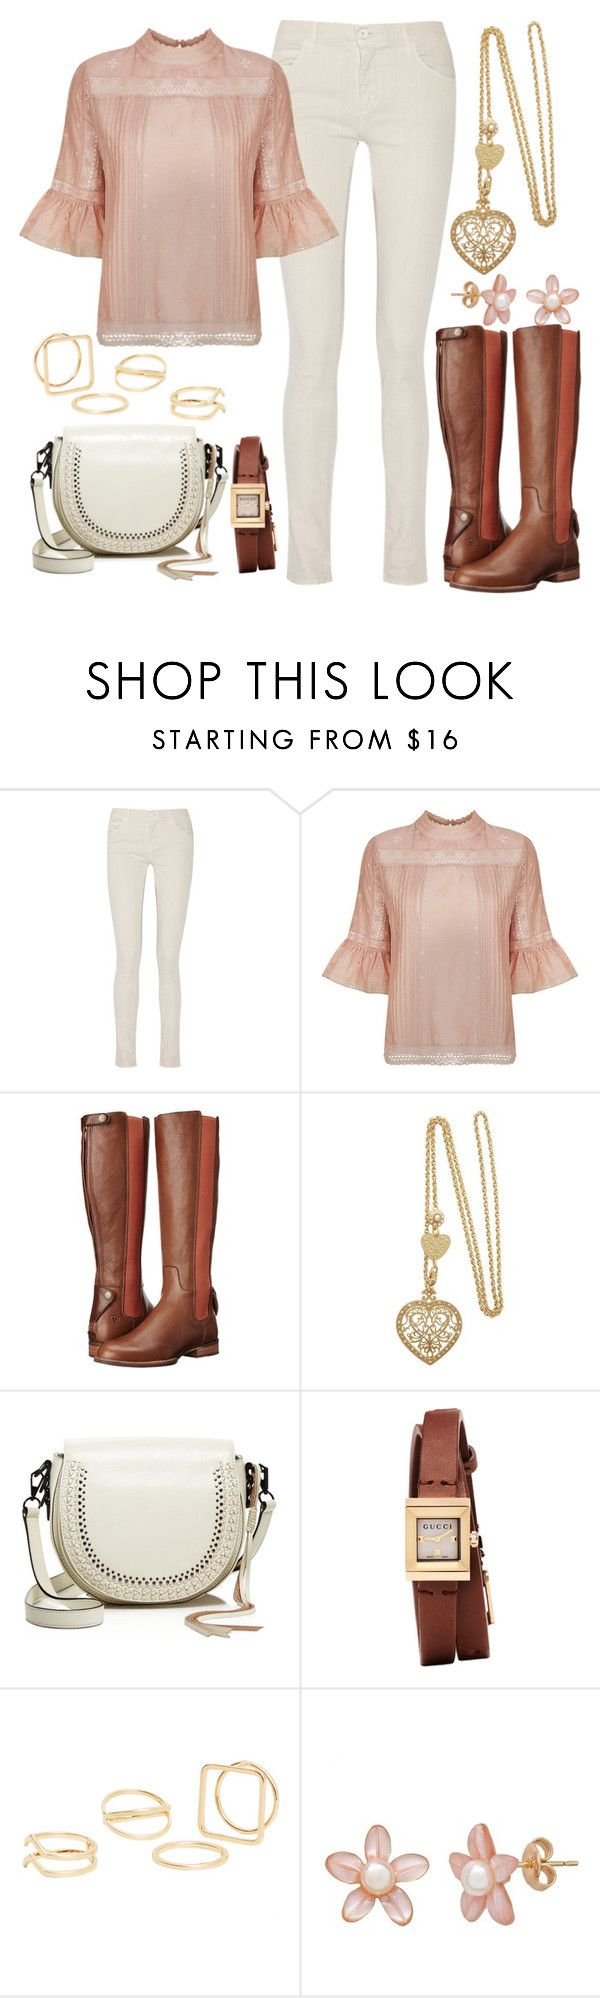 """Bell Sleeve Blouse"" by joslynaurora ❤ liked on Polyvore featuring MM6 Maison Margiela, Ulla Johnson, Ariat, Rebecca Minkoff, Gucci, MANGO, Boots, blouse, goingout and bellsleeve"